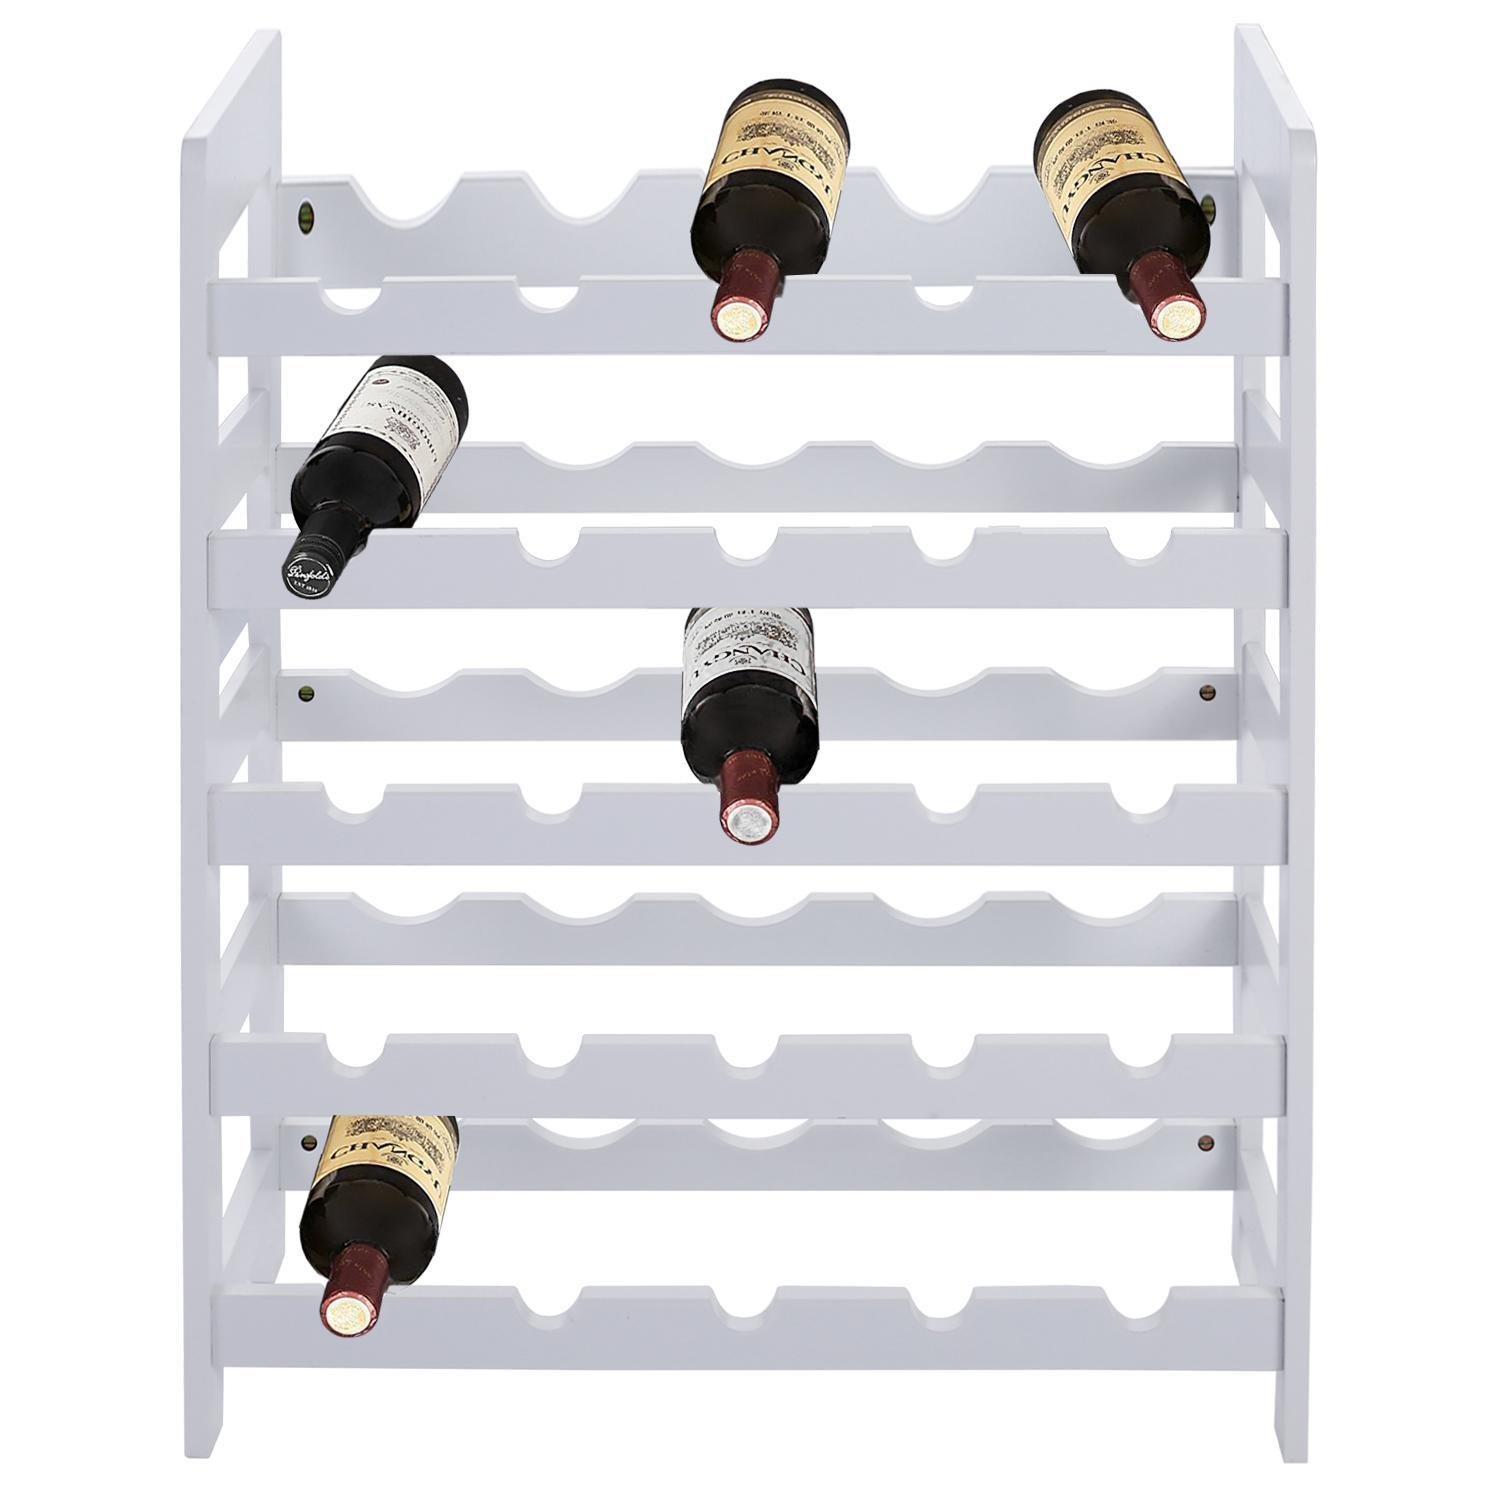 25 Bottle Capacity Stackable Modular Wine Rack Stackable Storage Stand Display Shelves, Solid Wood